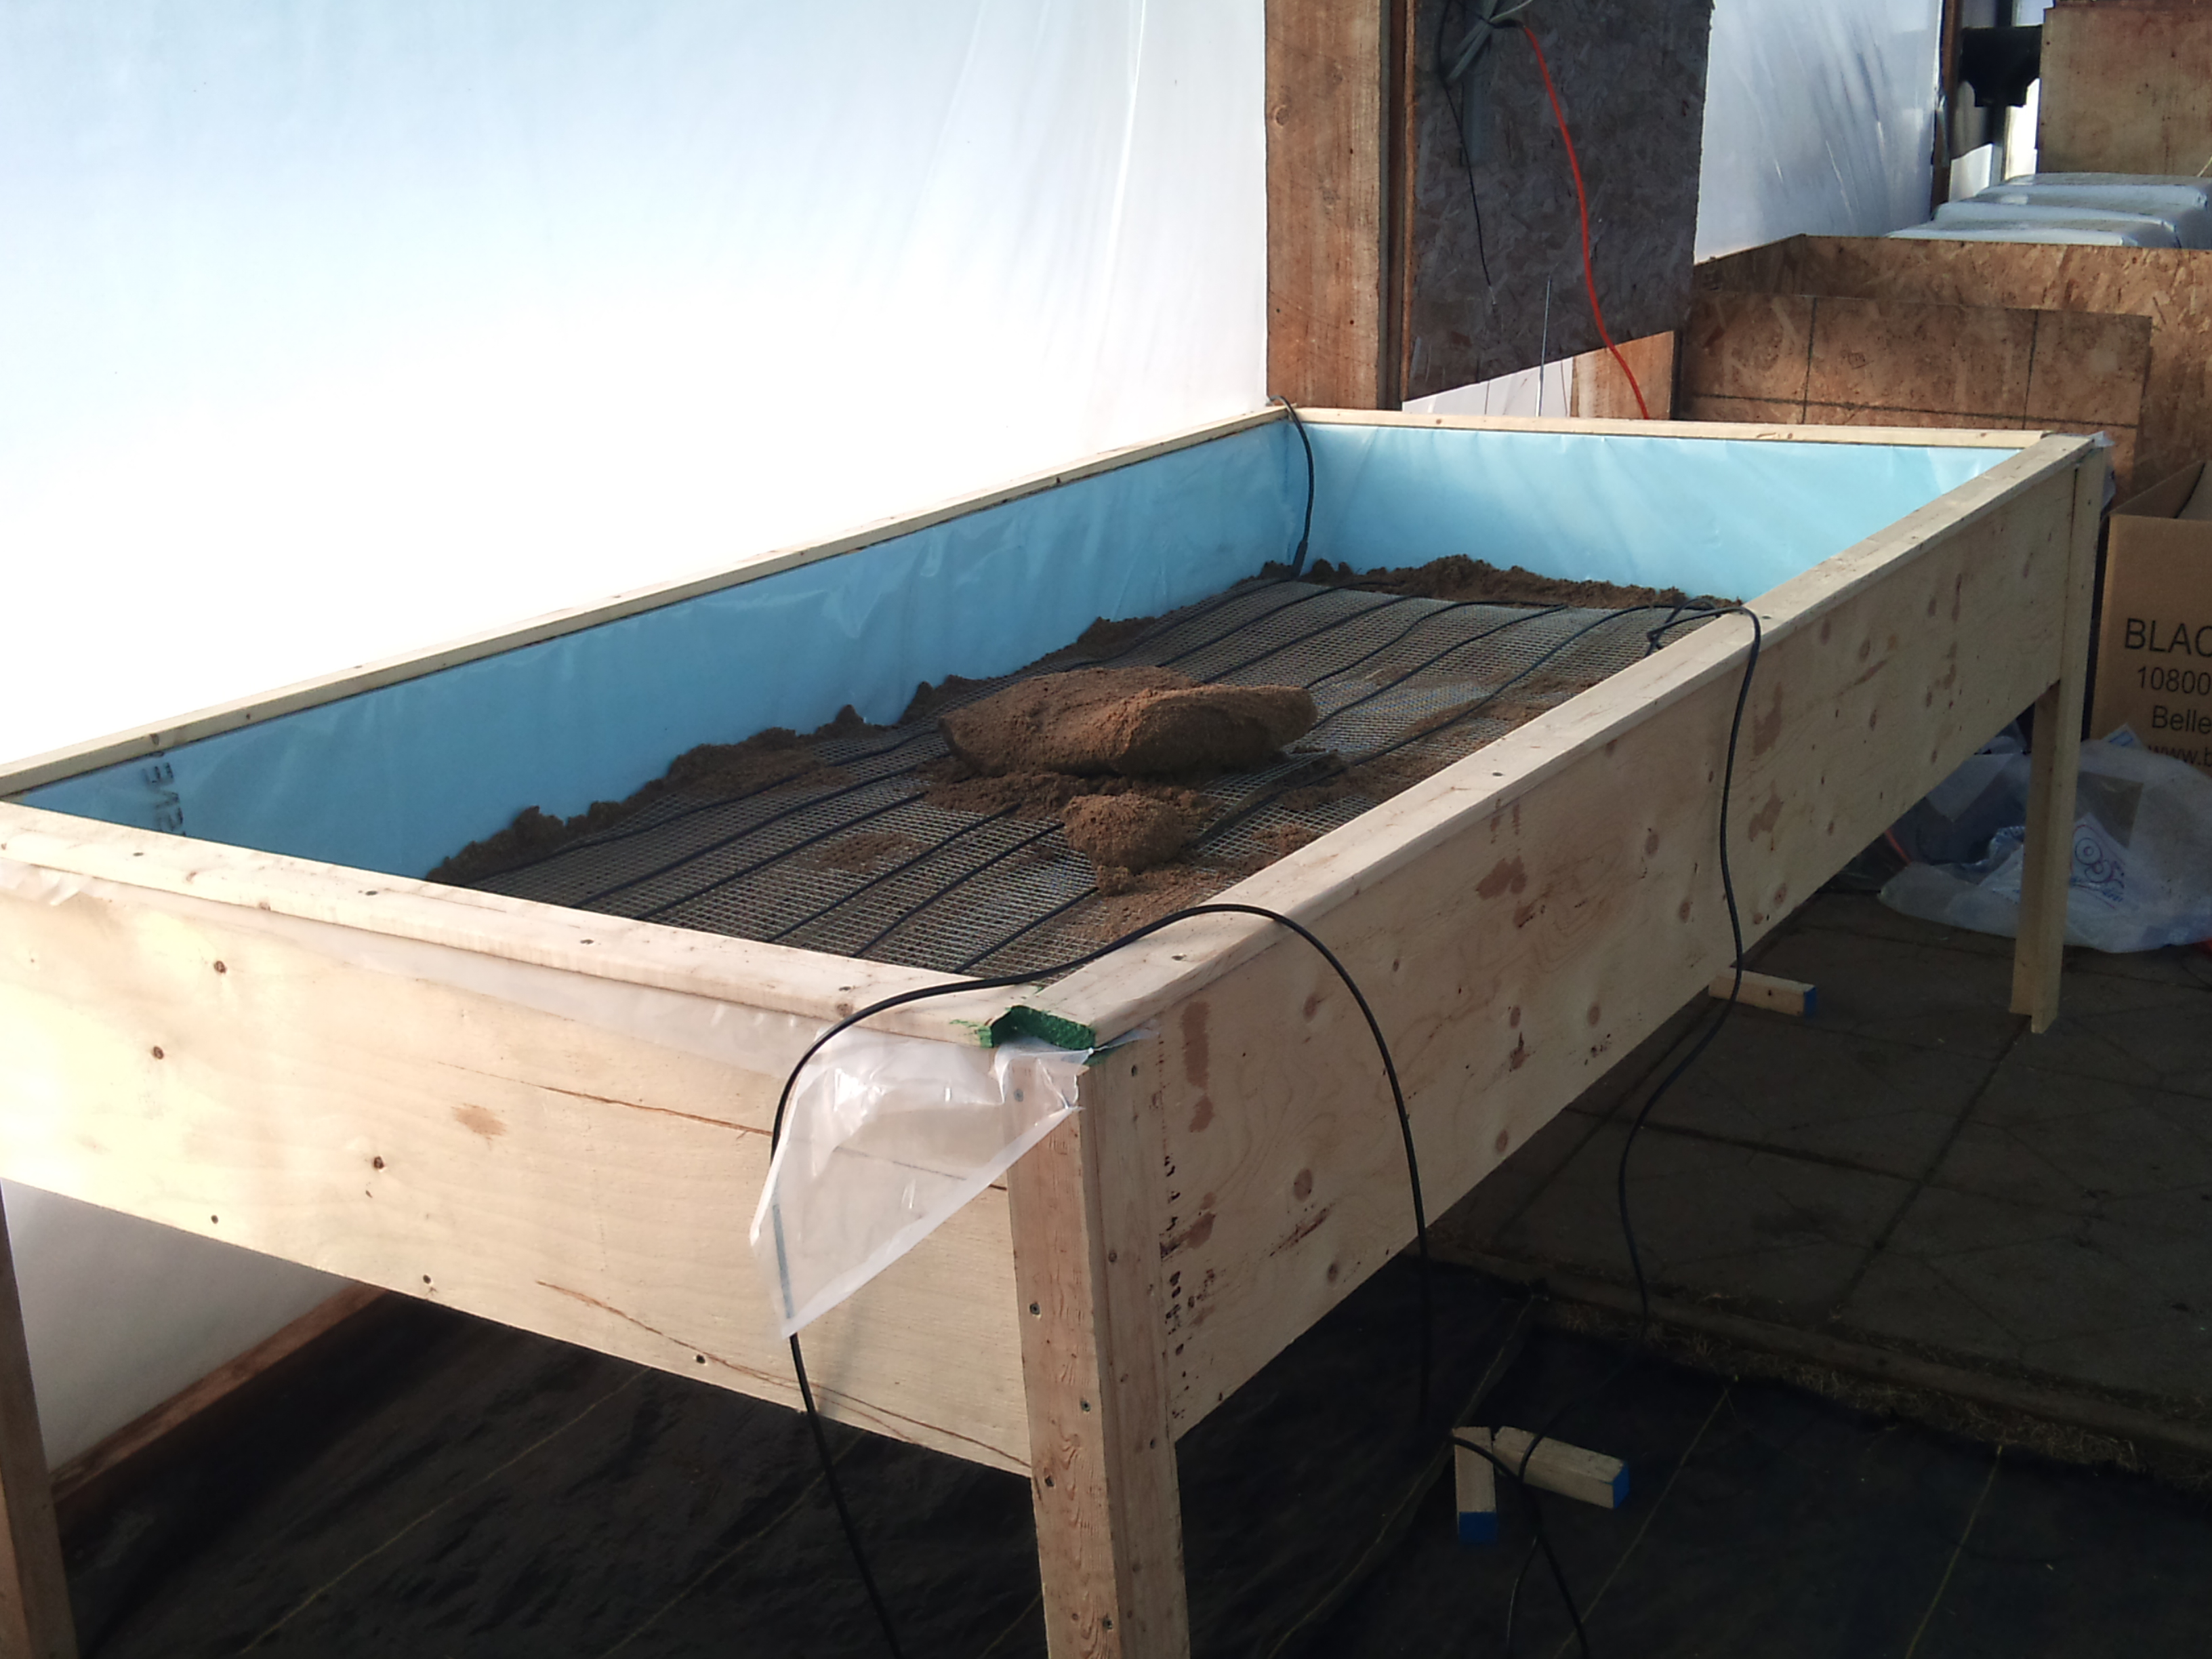 Smart Lights Heated Greenhouse Table | Farm Hack